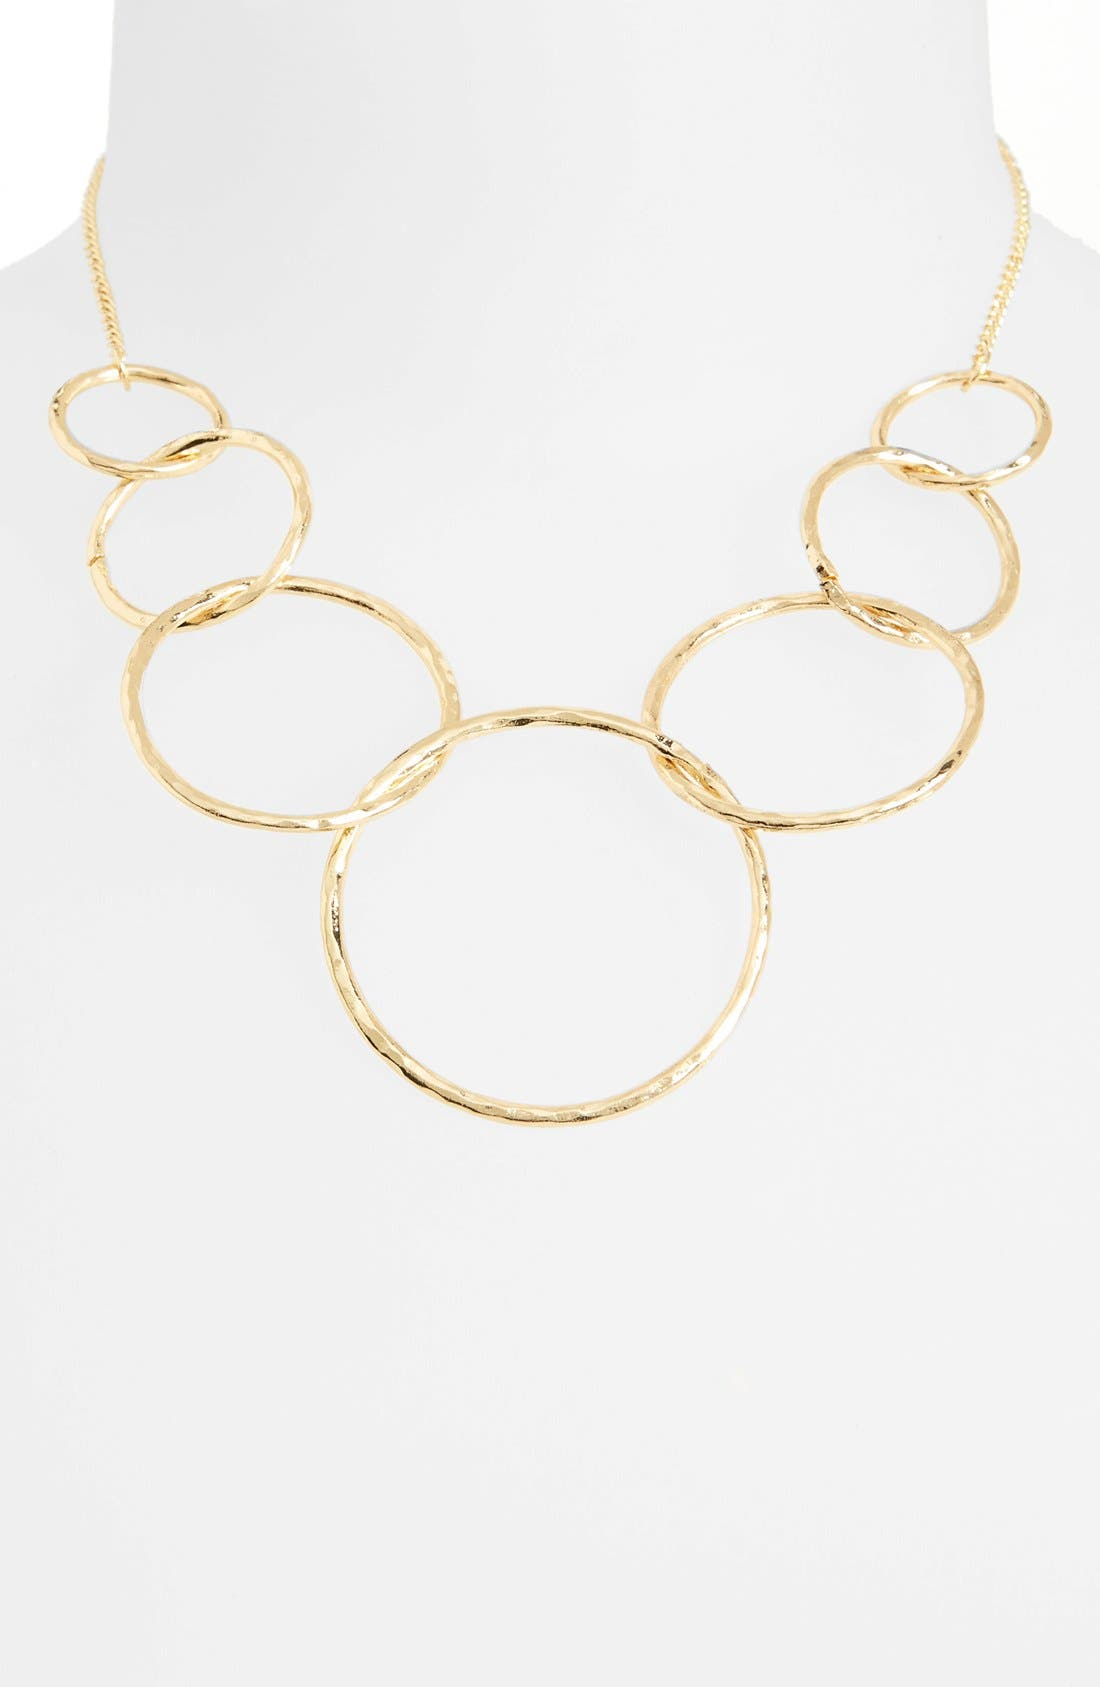 Main Image - Panacea Circle Link Necklace